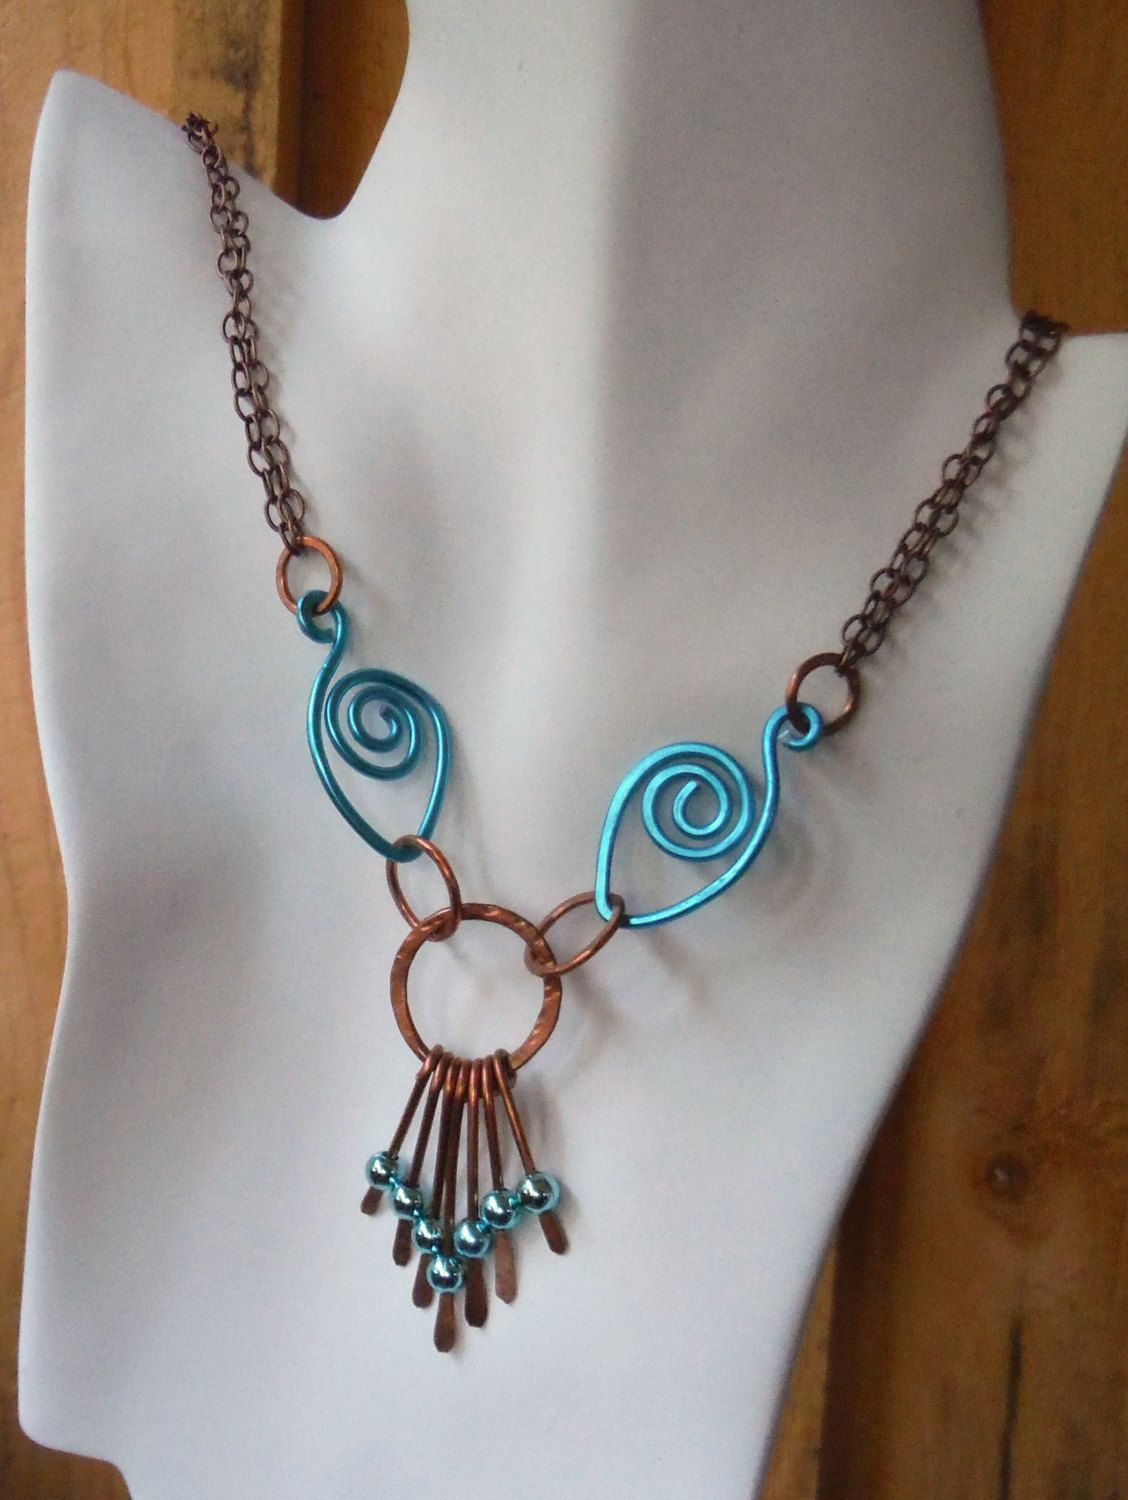 Eyes of Egypt copper link necklace, pendant necklace, bold copper necklace, hand hammered necklace, handmade jewelry... by BeAditudes4U on Etsy